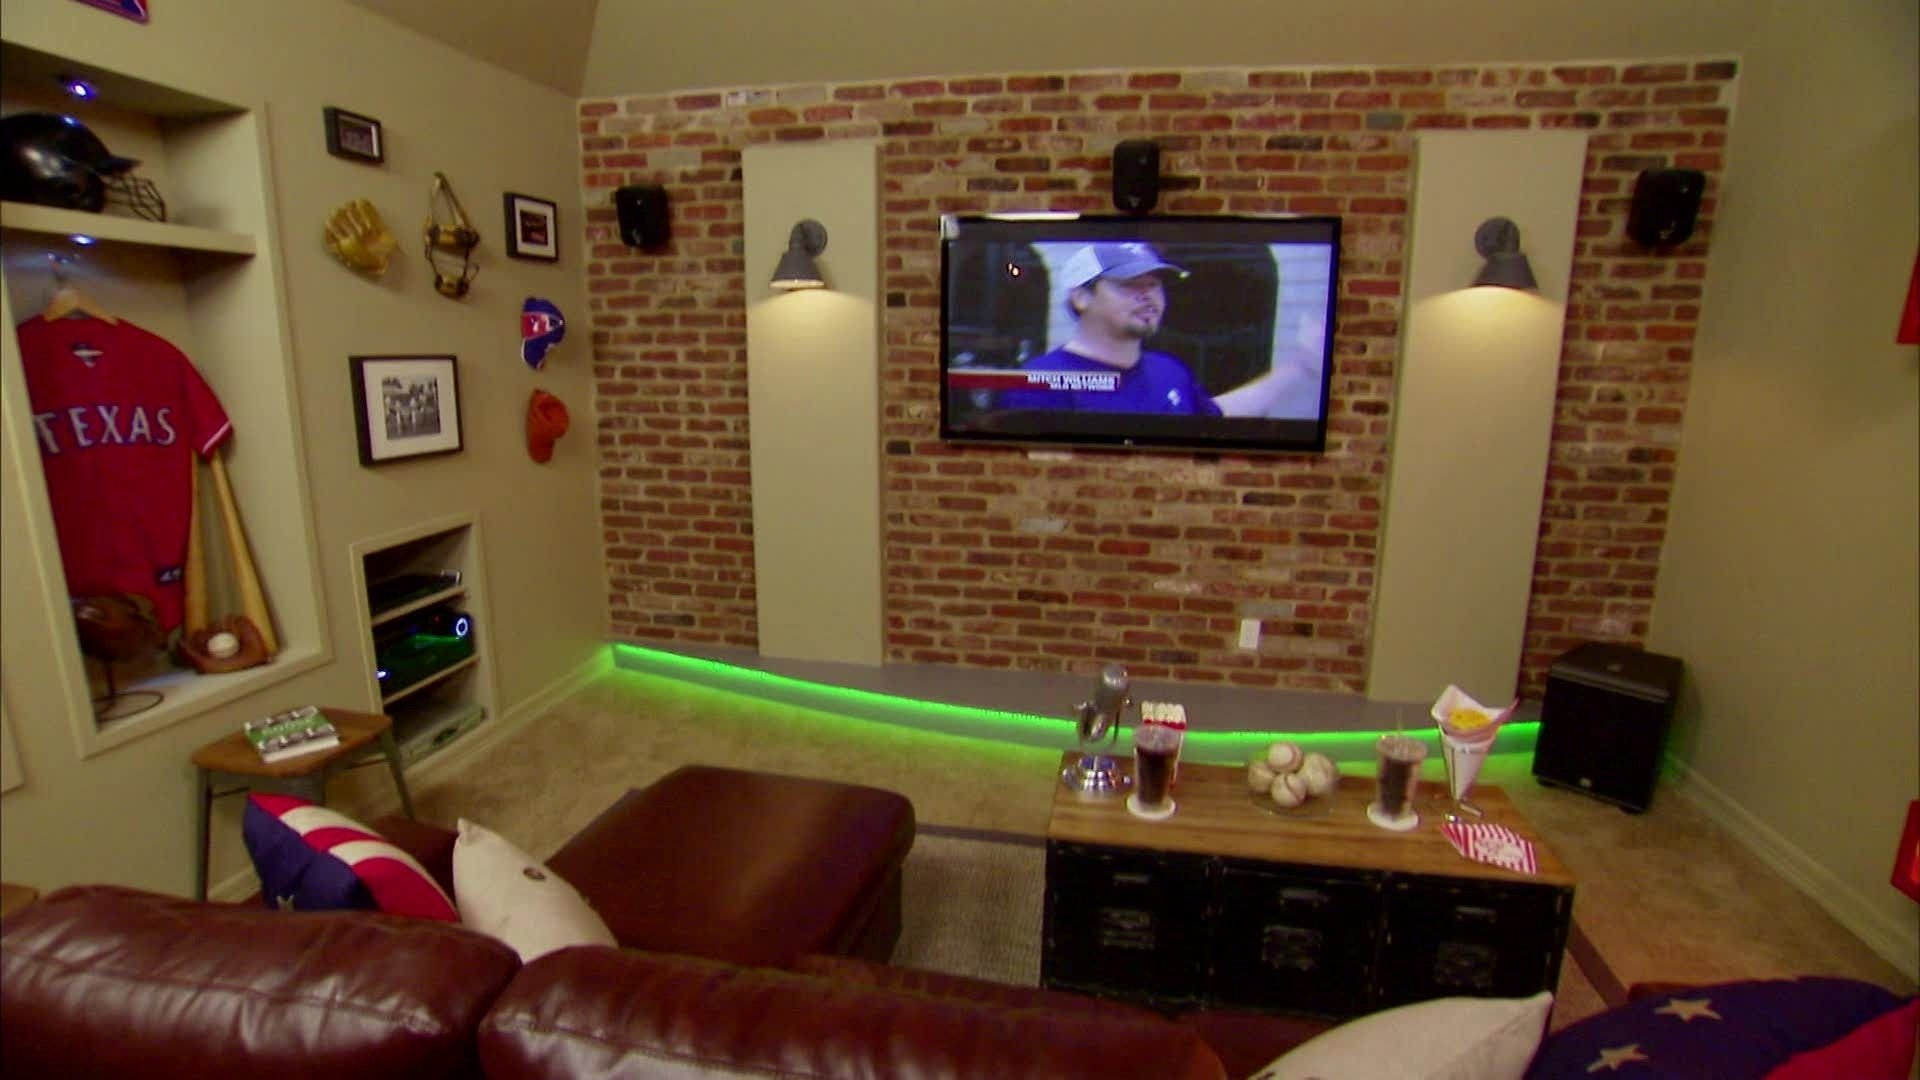 10 Perfect Man Cave Ideas For A Small Room unbelievable stadium theater man diy pict of ideas for a small room 2021